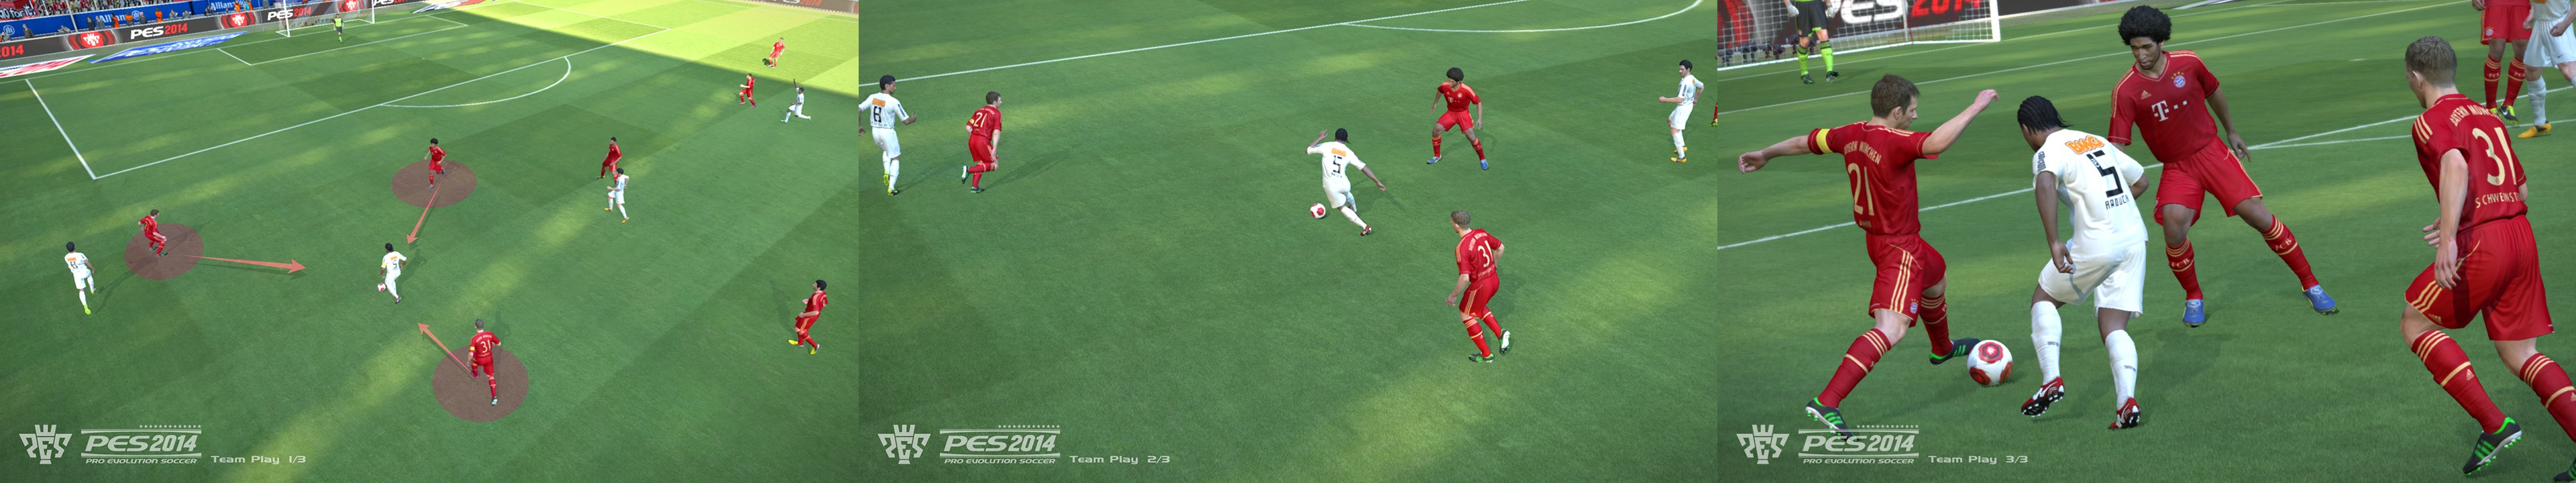 Pes2014_TeamPlay_02